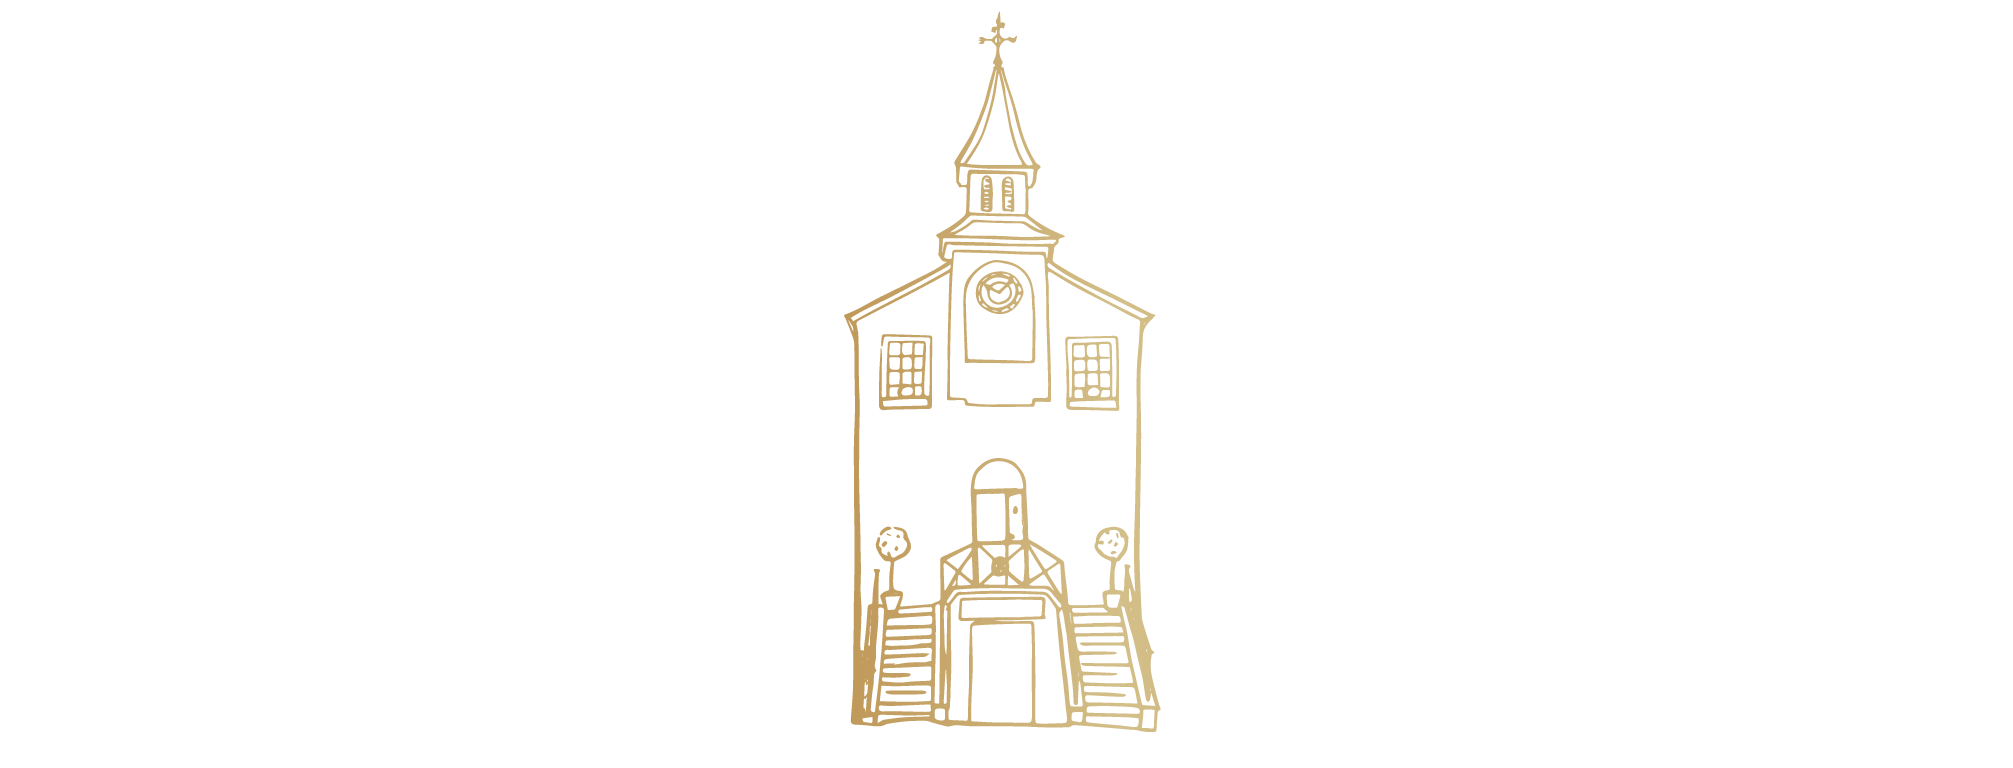 Golden-sheaf-clocktower-phone.png